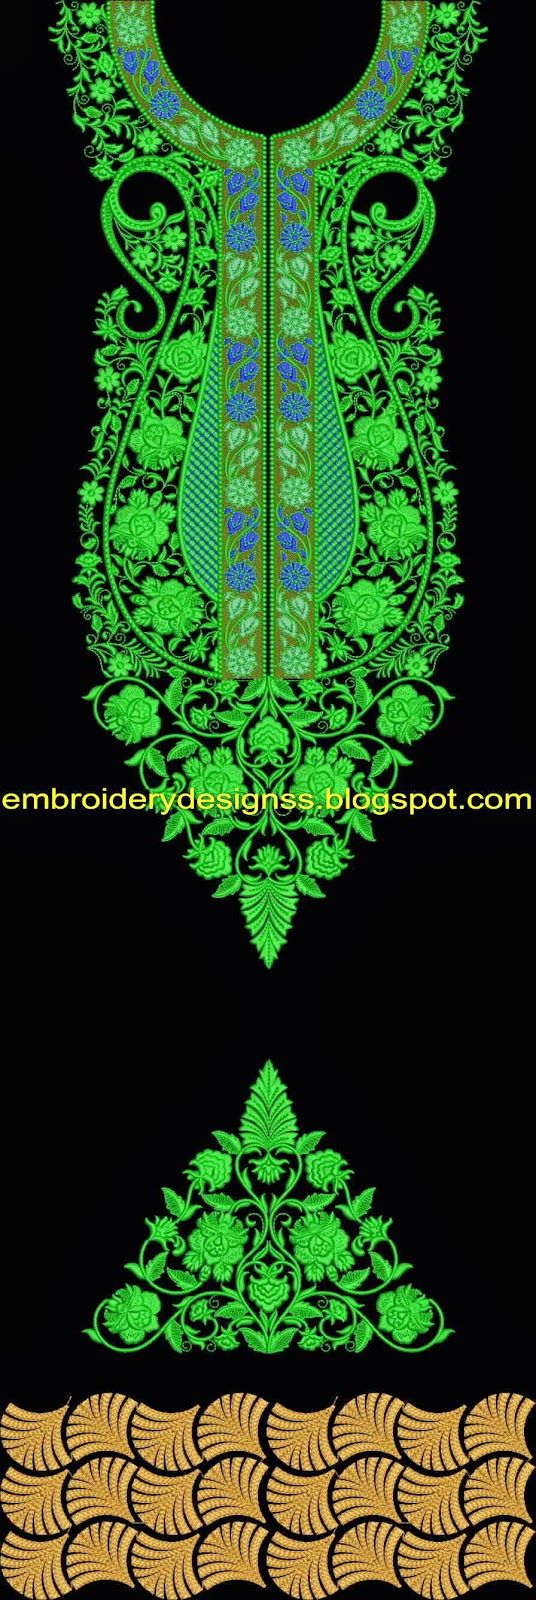 Latest Embroidery Designs For Sale, If U Want Embroidery Designs Plz Contact (Khalid Mahmood, +92-300-9406667) www.embroiderydesignss.blogspot.com